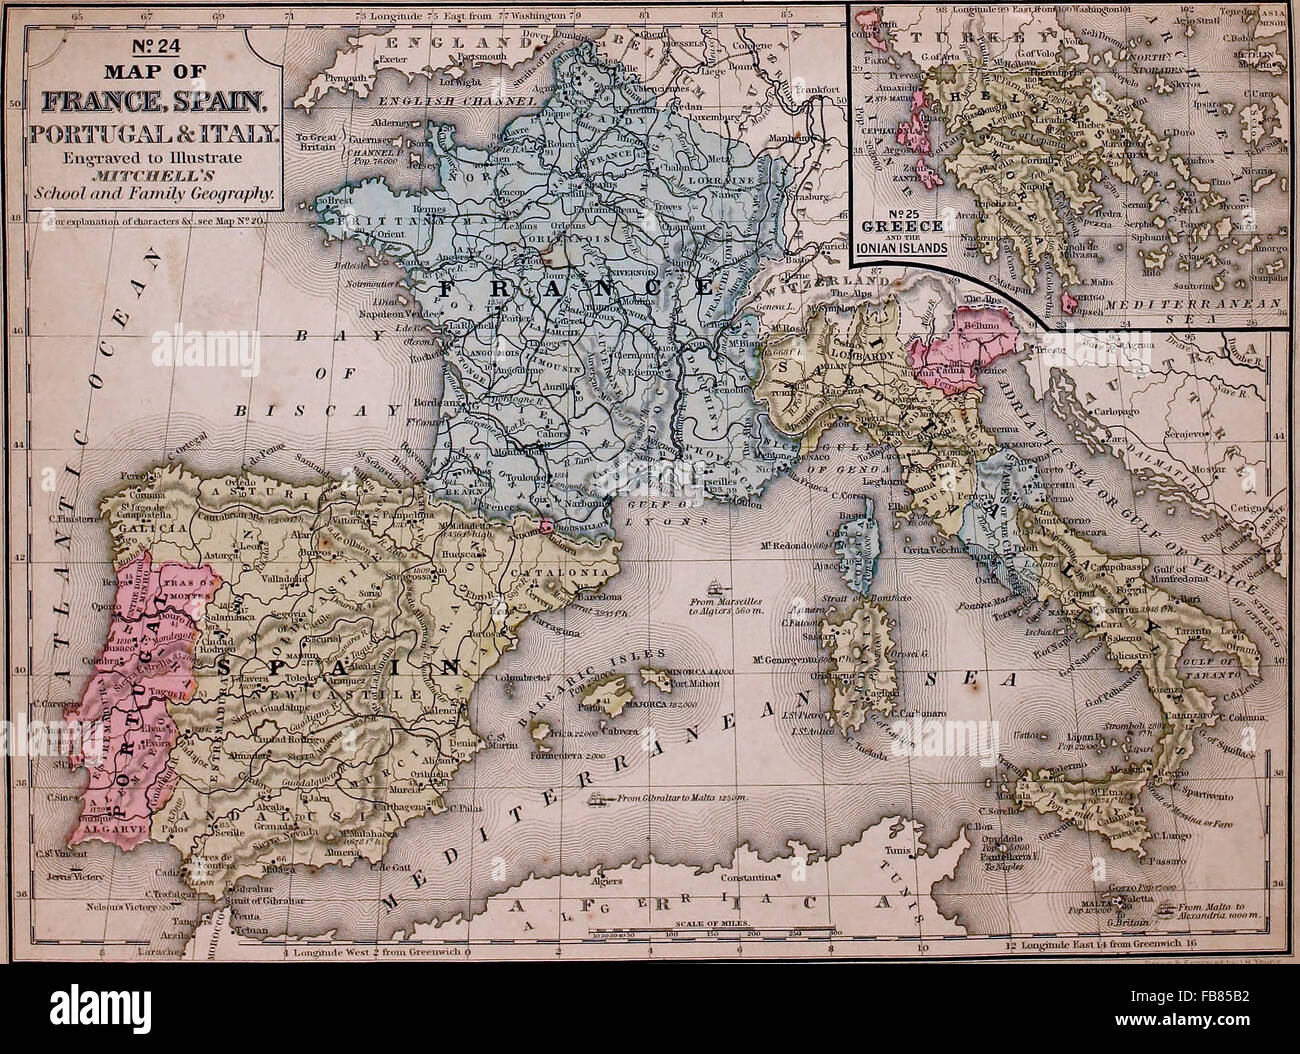 Map Of Portugal Spain France.Map Of France Spain Portugal And Italy With A Greece Inset Circa